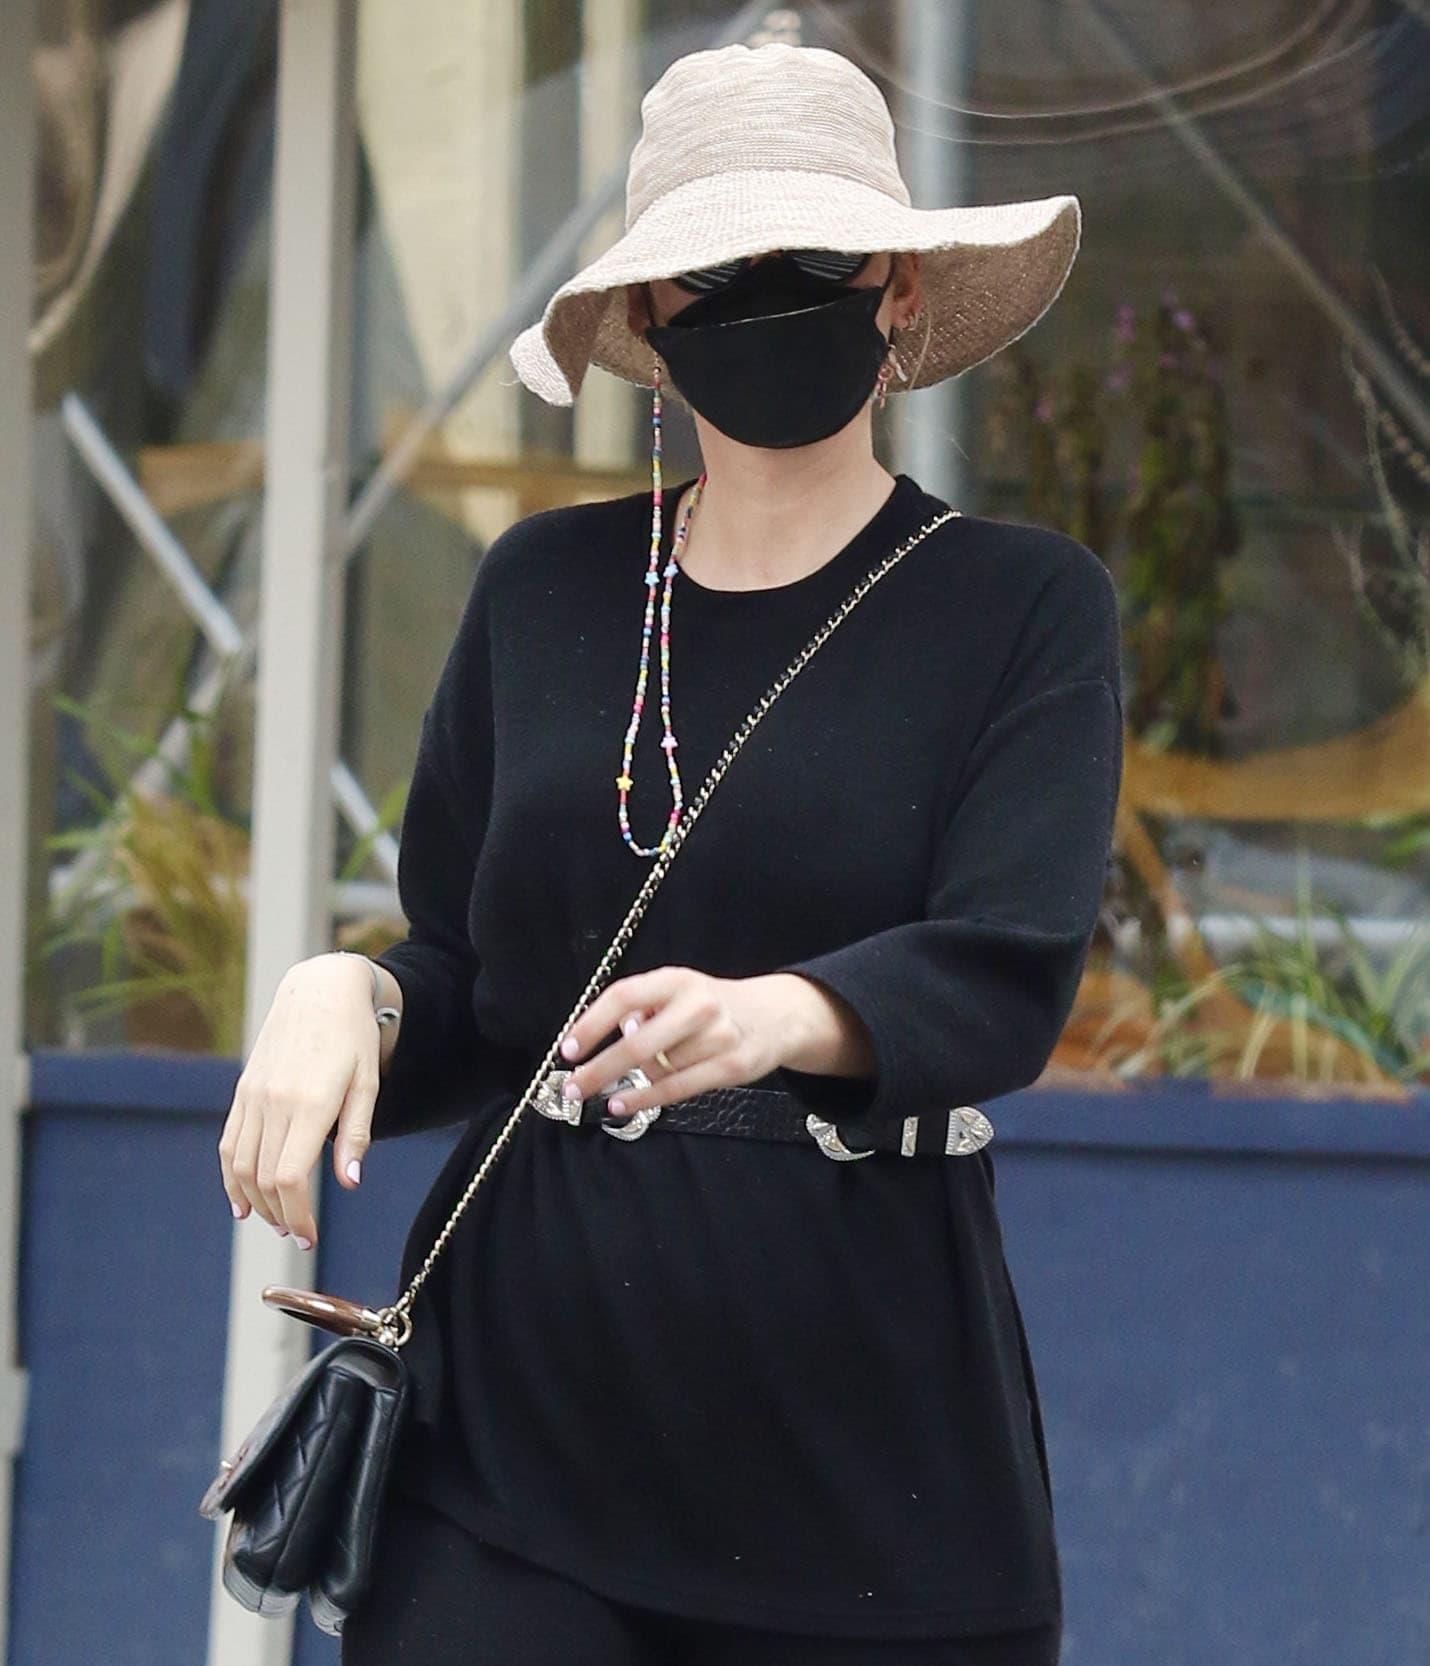 Blake Lively covers her face with David Beckham sunglasses, a black face mask, and a floppy hat